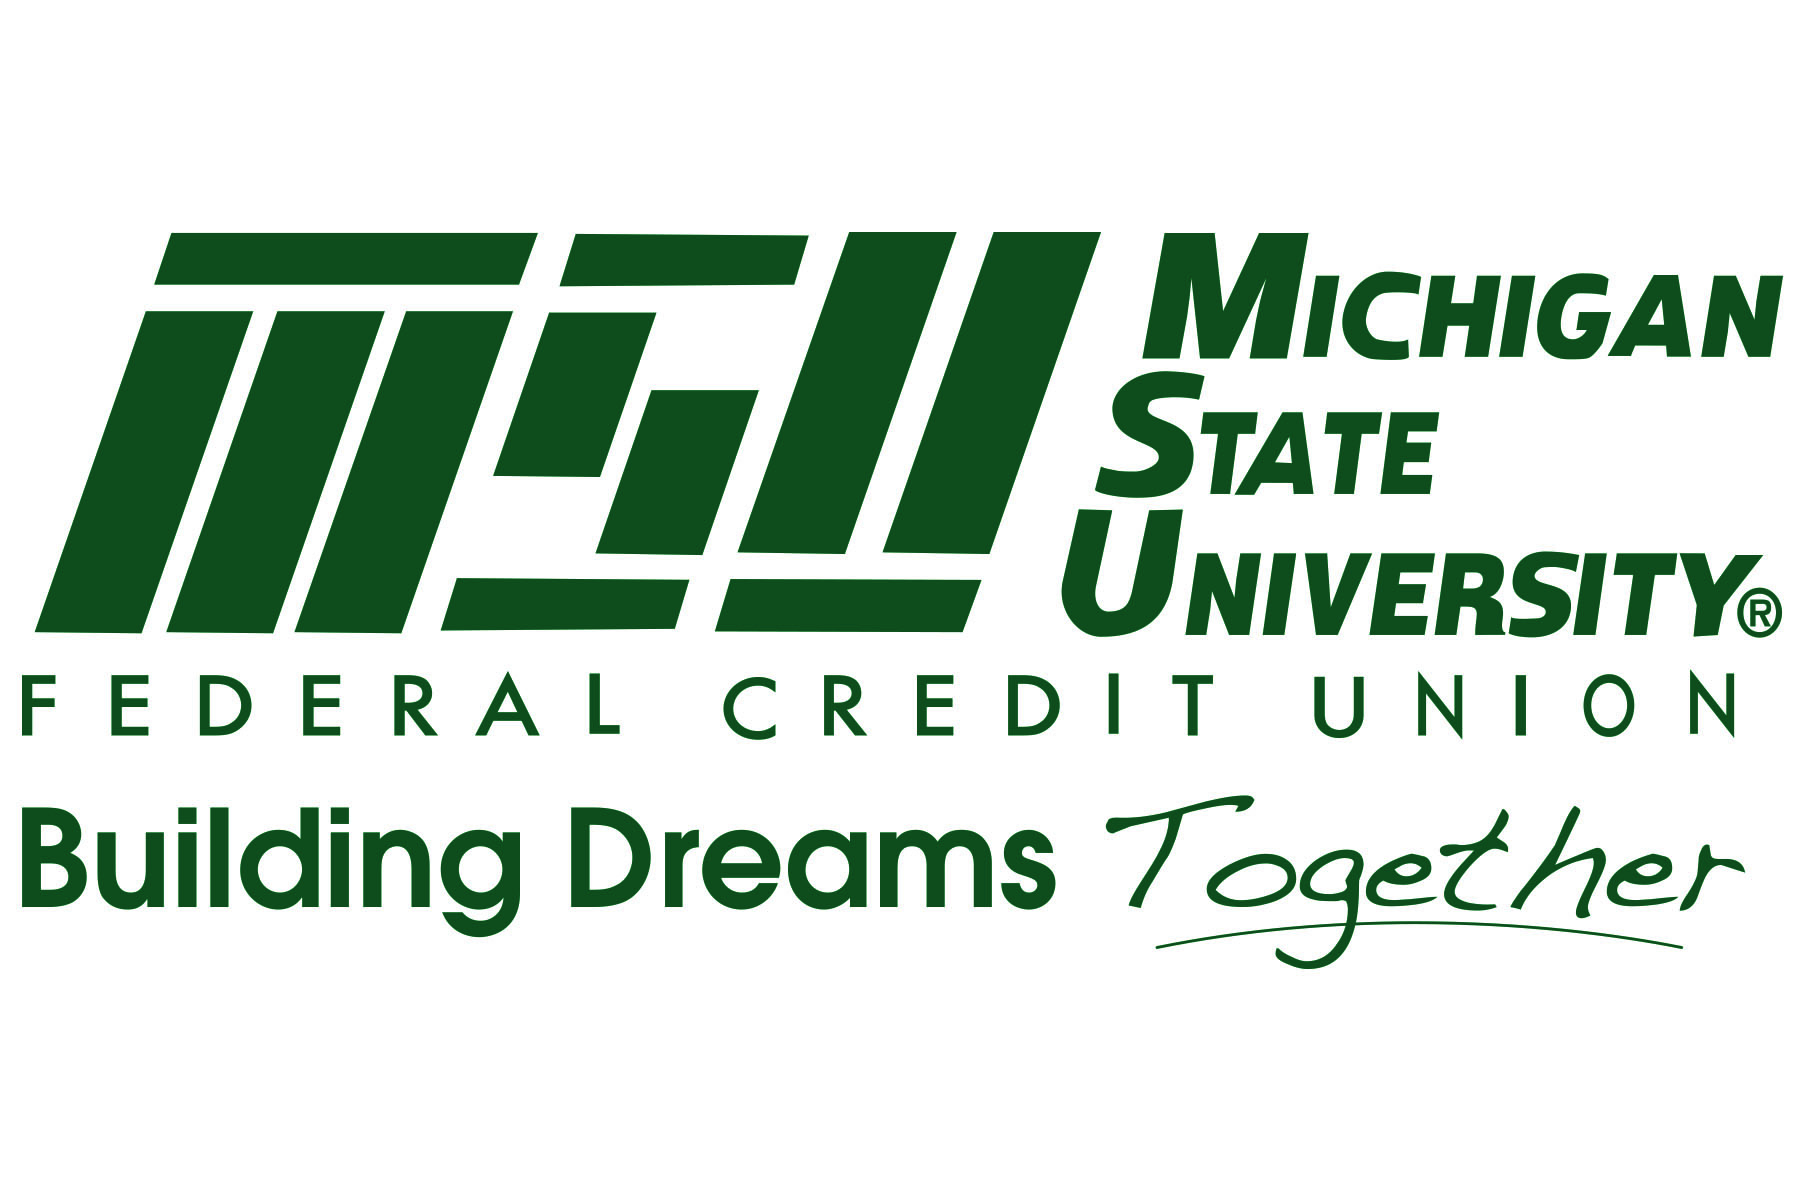 Michigan State University Federal Credit Union (Vendor)